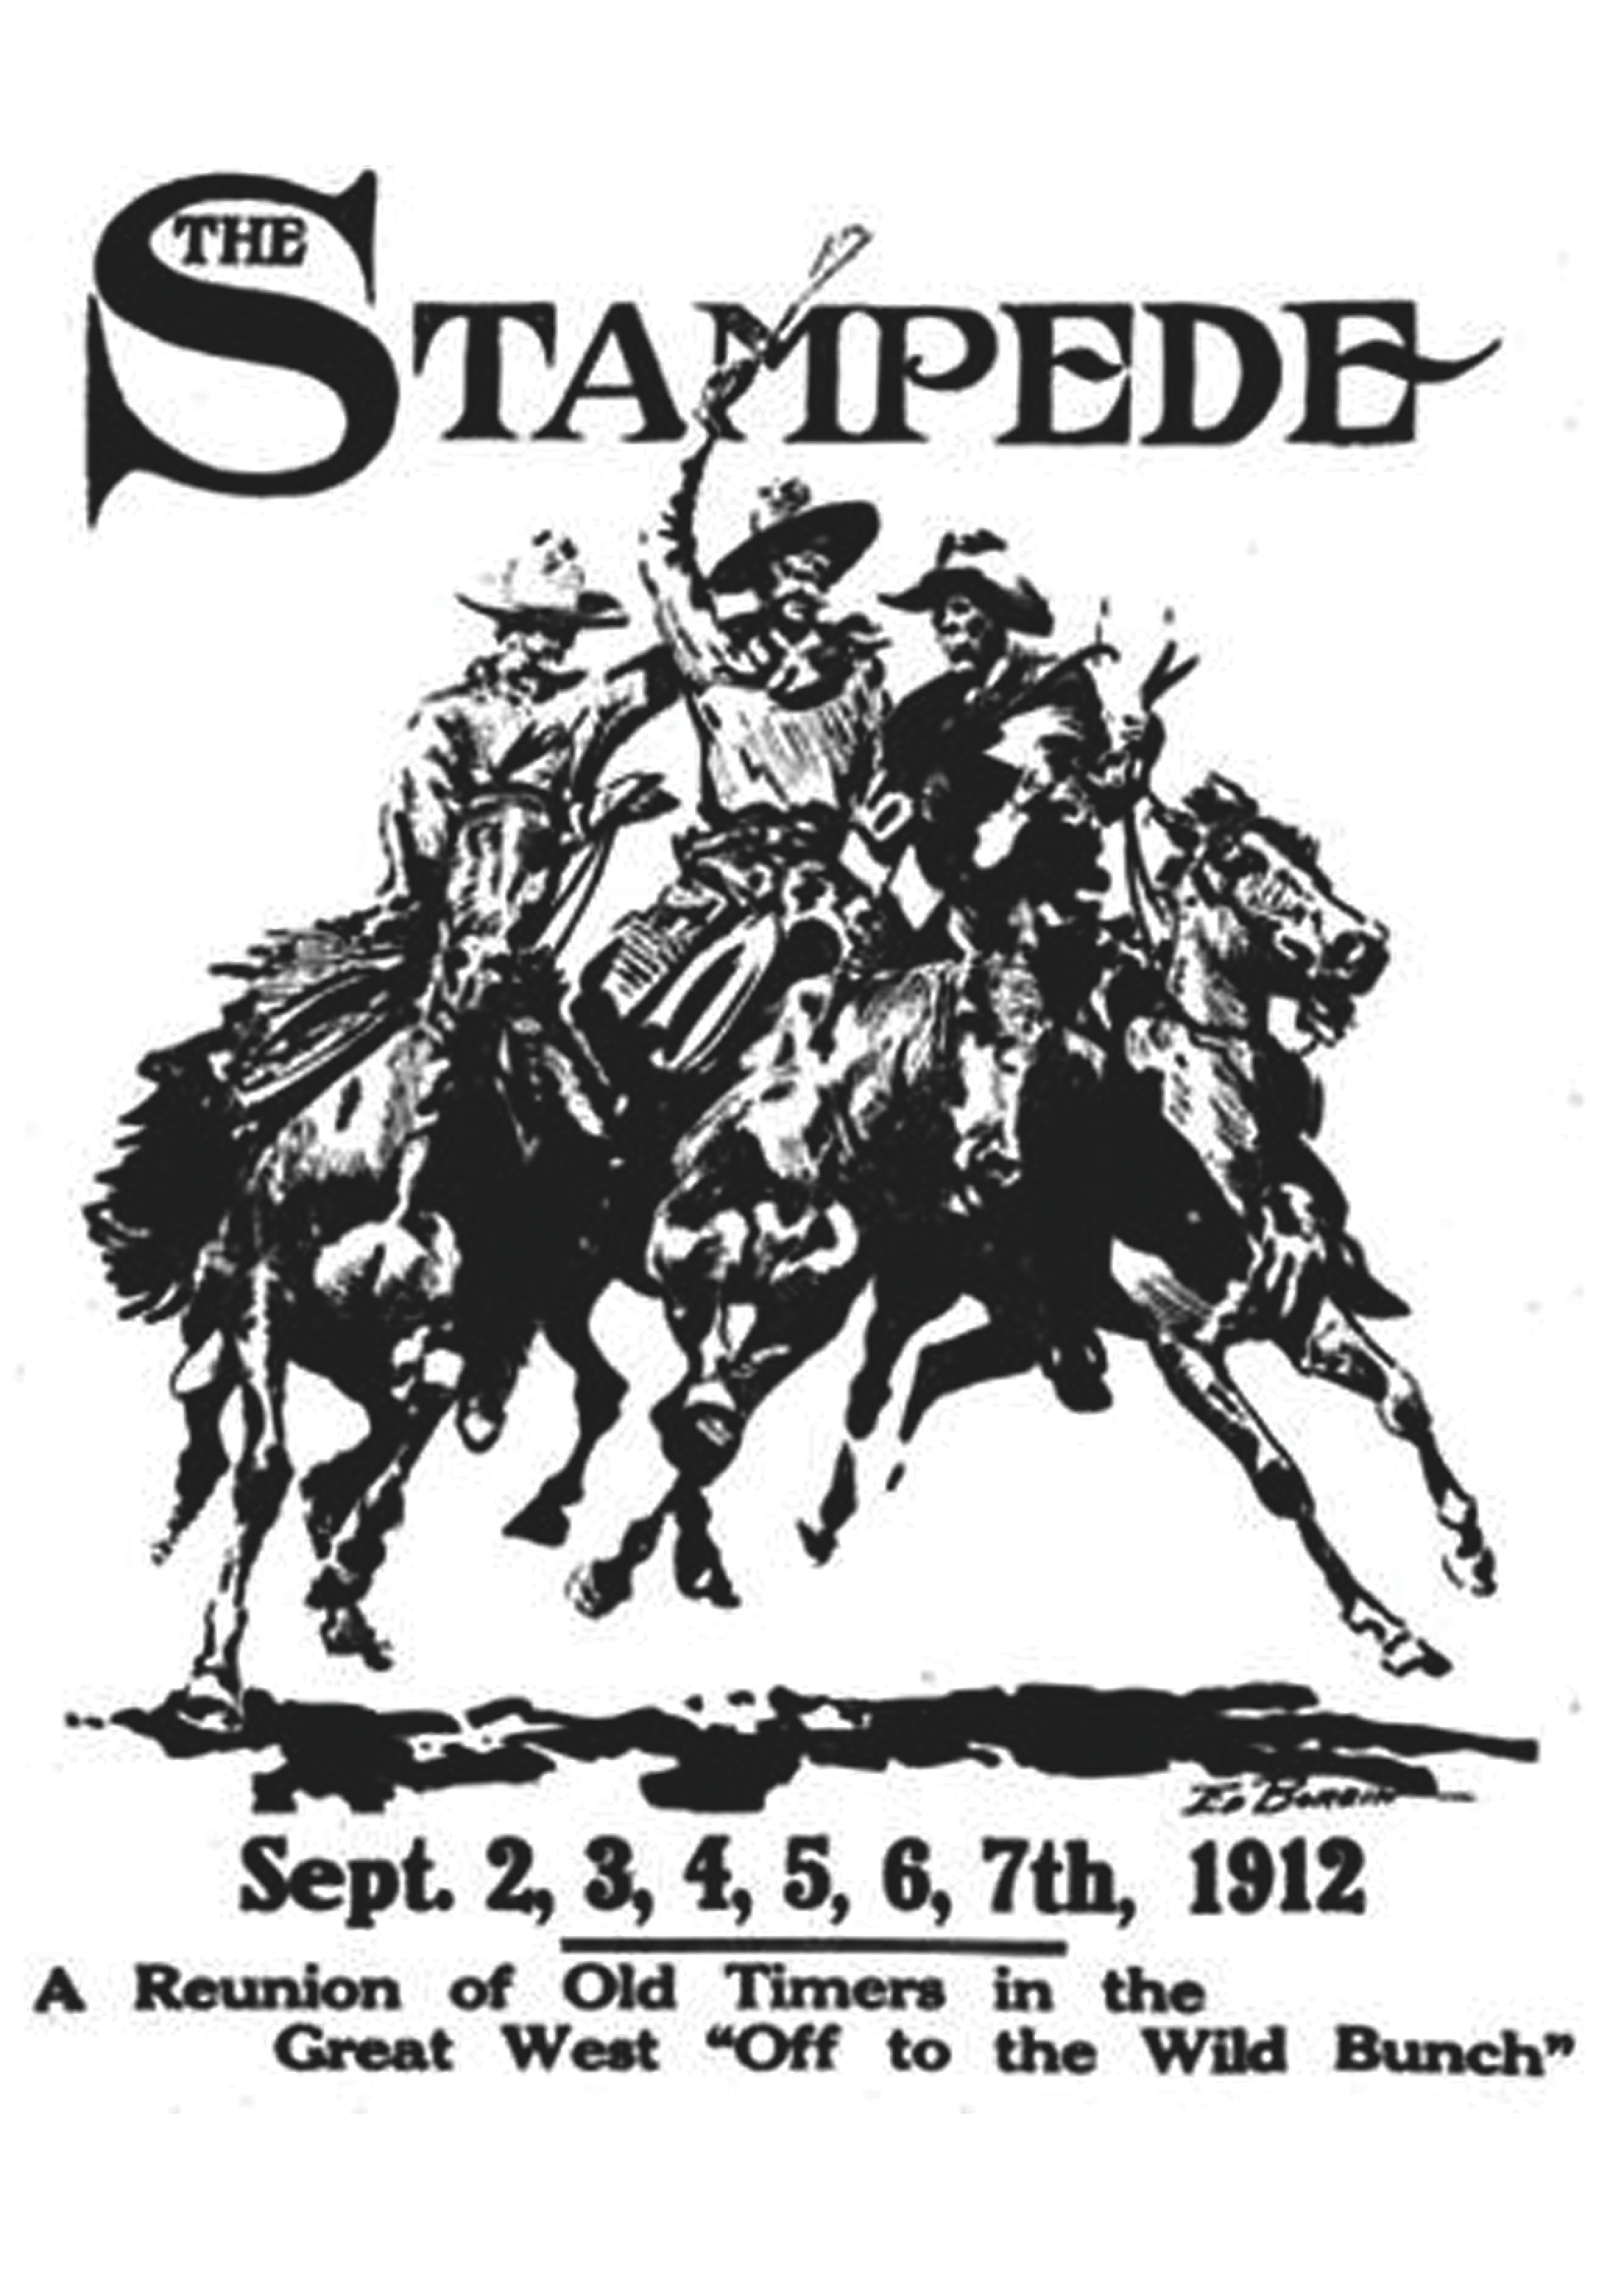 Stampede Century Marketing Magazine